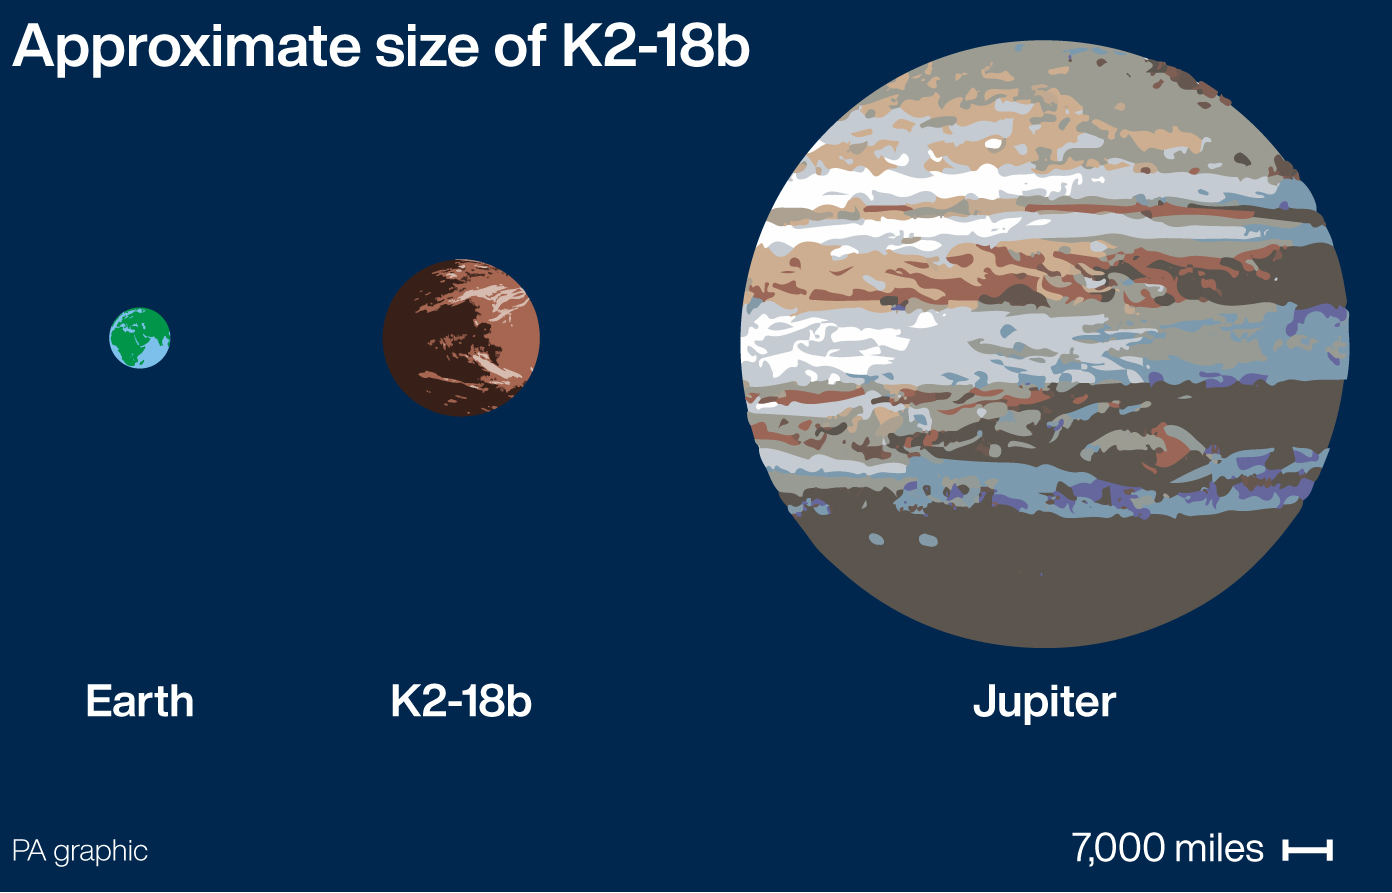 Graphic shows the approximate size of super-Earth K2-18b compared to Earth and Jupiter